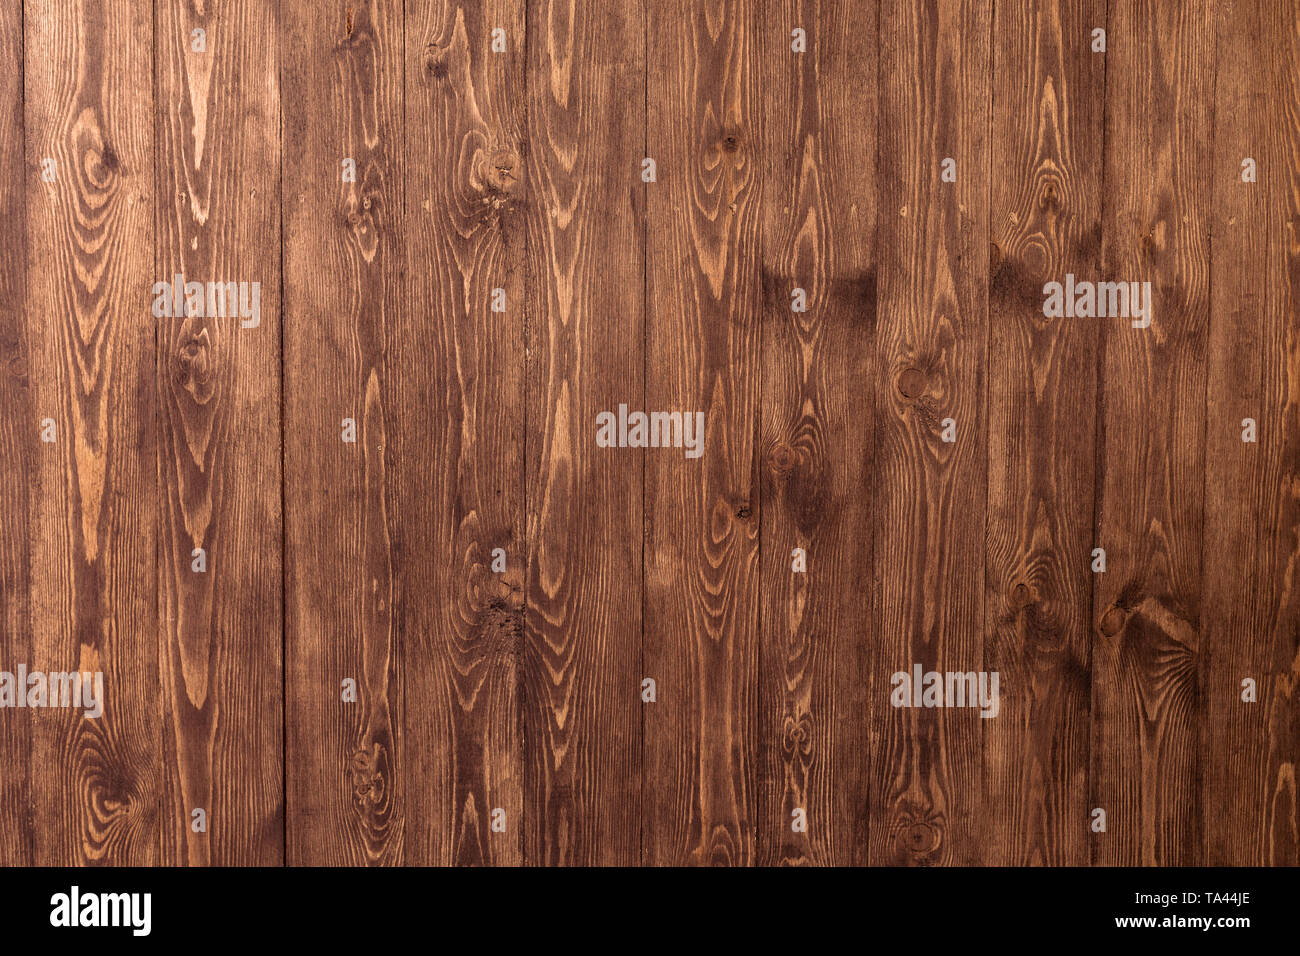 Dark old wooden table texture background top view - Stock Image